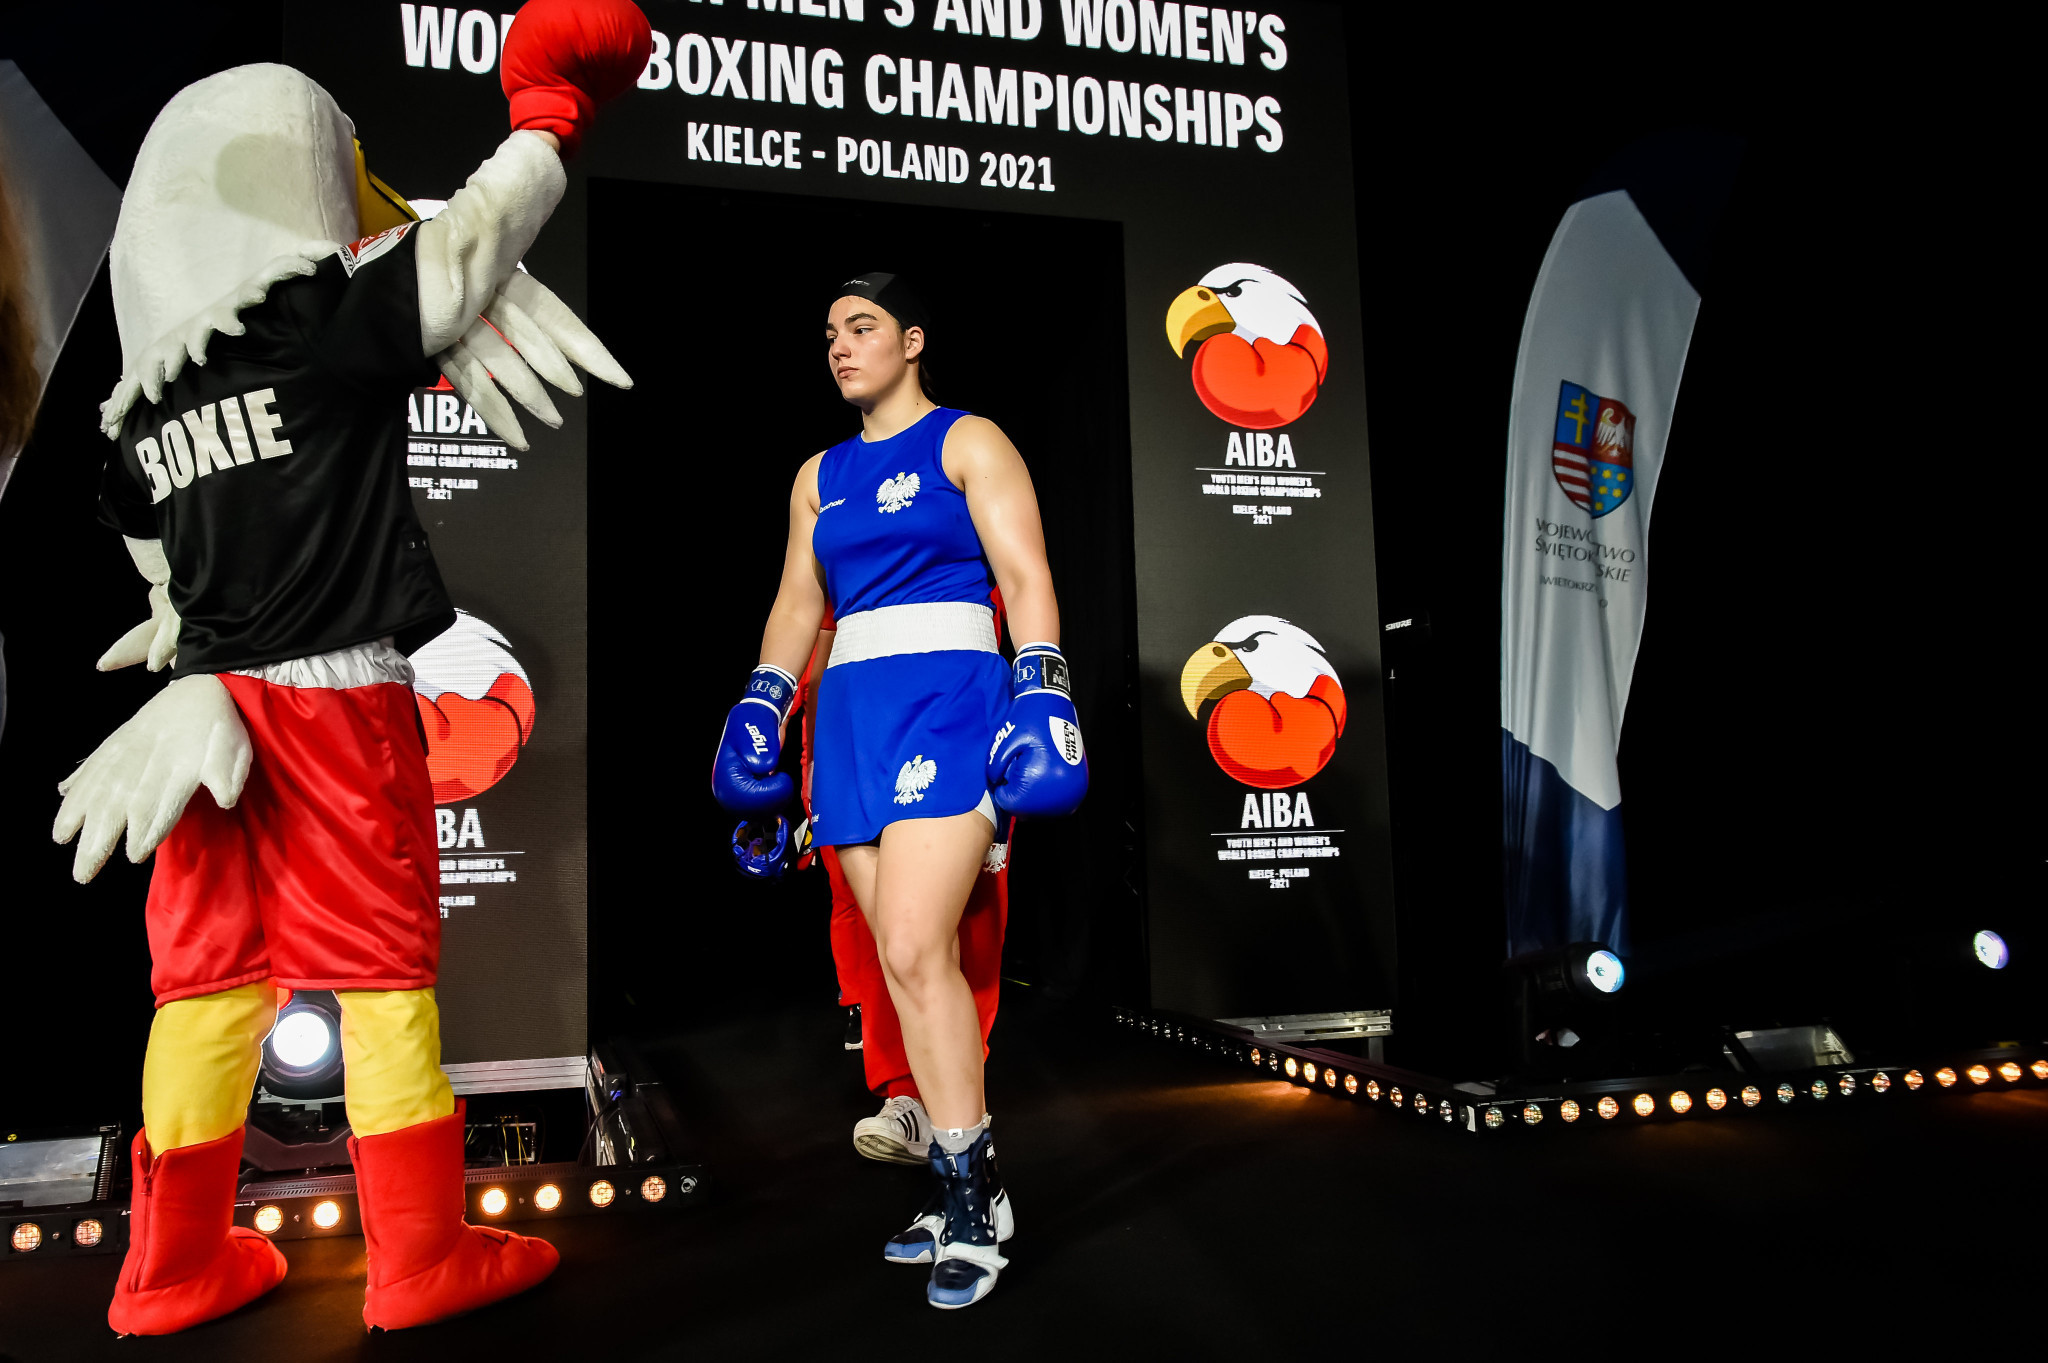 Boxie, the mascot for the Championships looks on as a fighter enters the ring ©AIBA